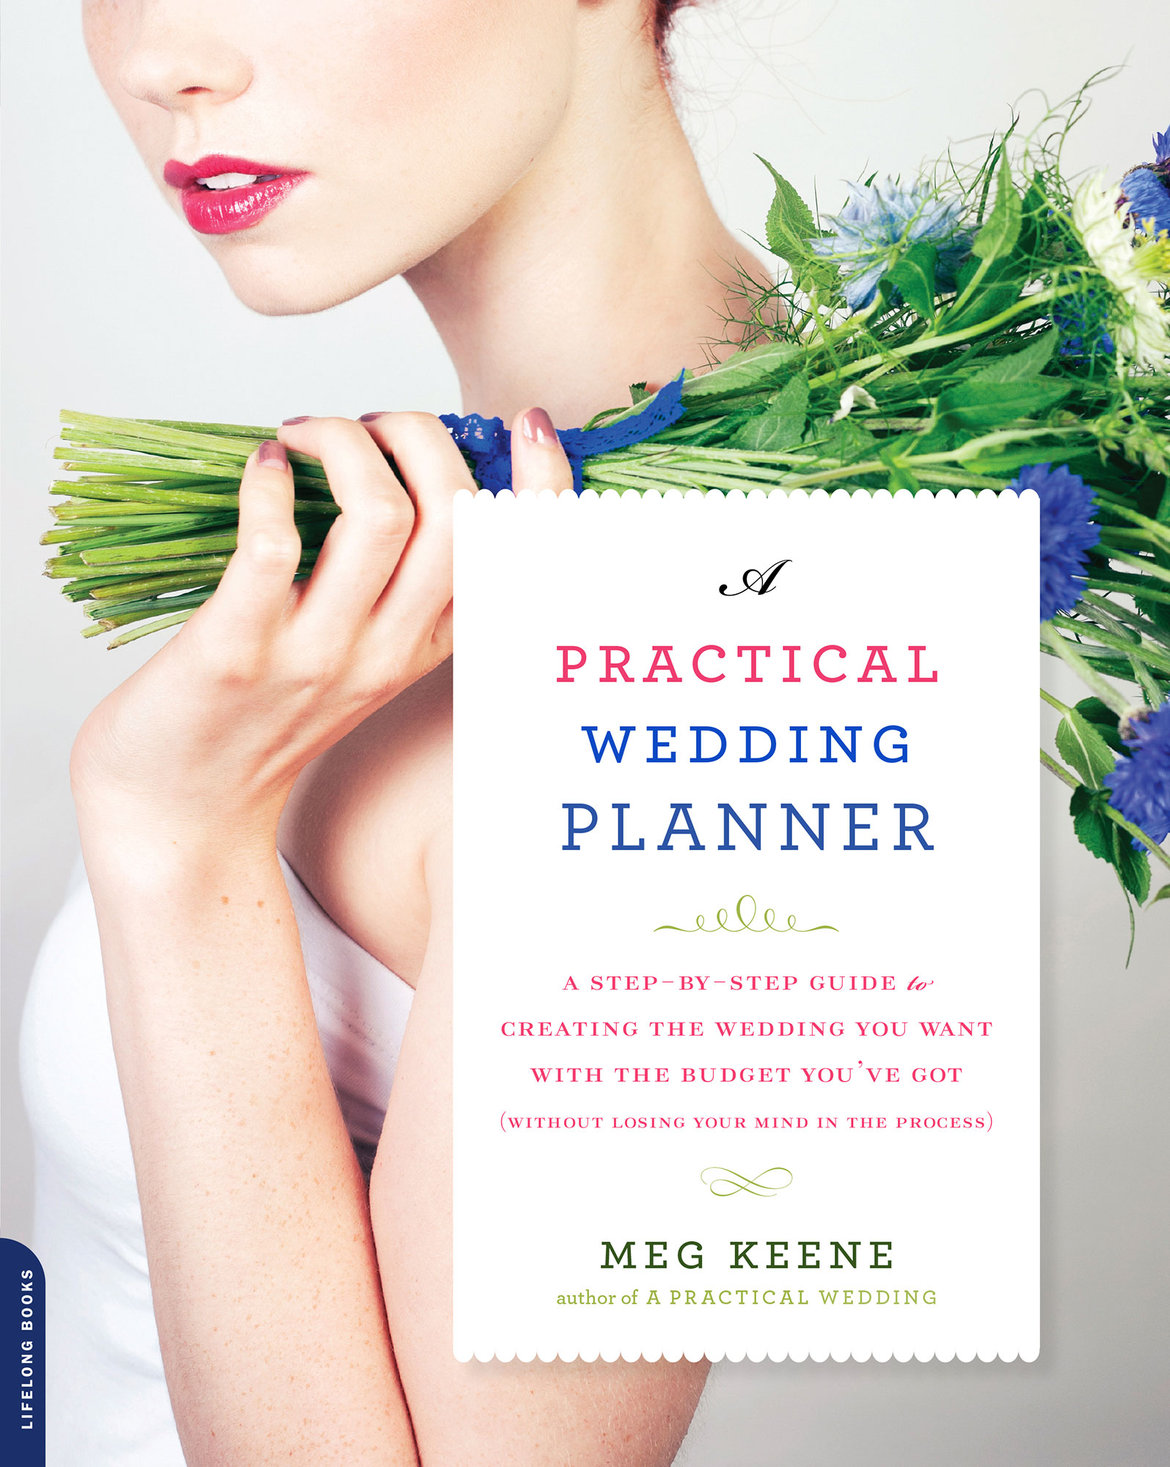 a practical wedding planner step by step guide to creating the wedding you want with the budget youve got